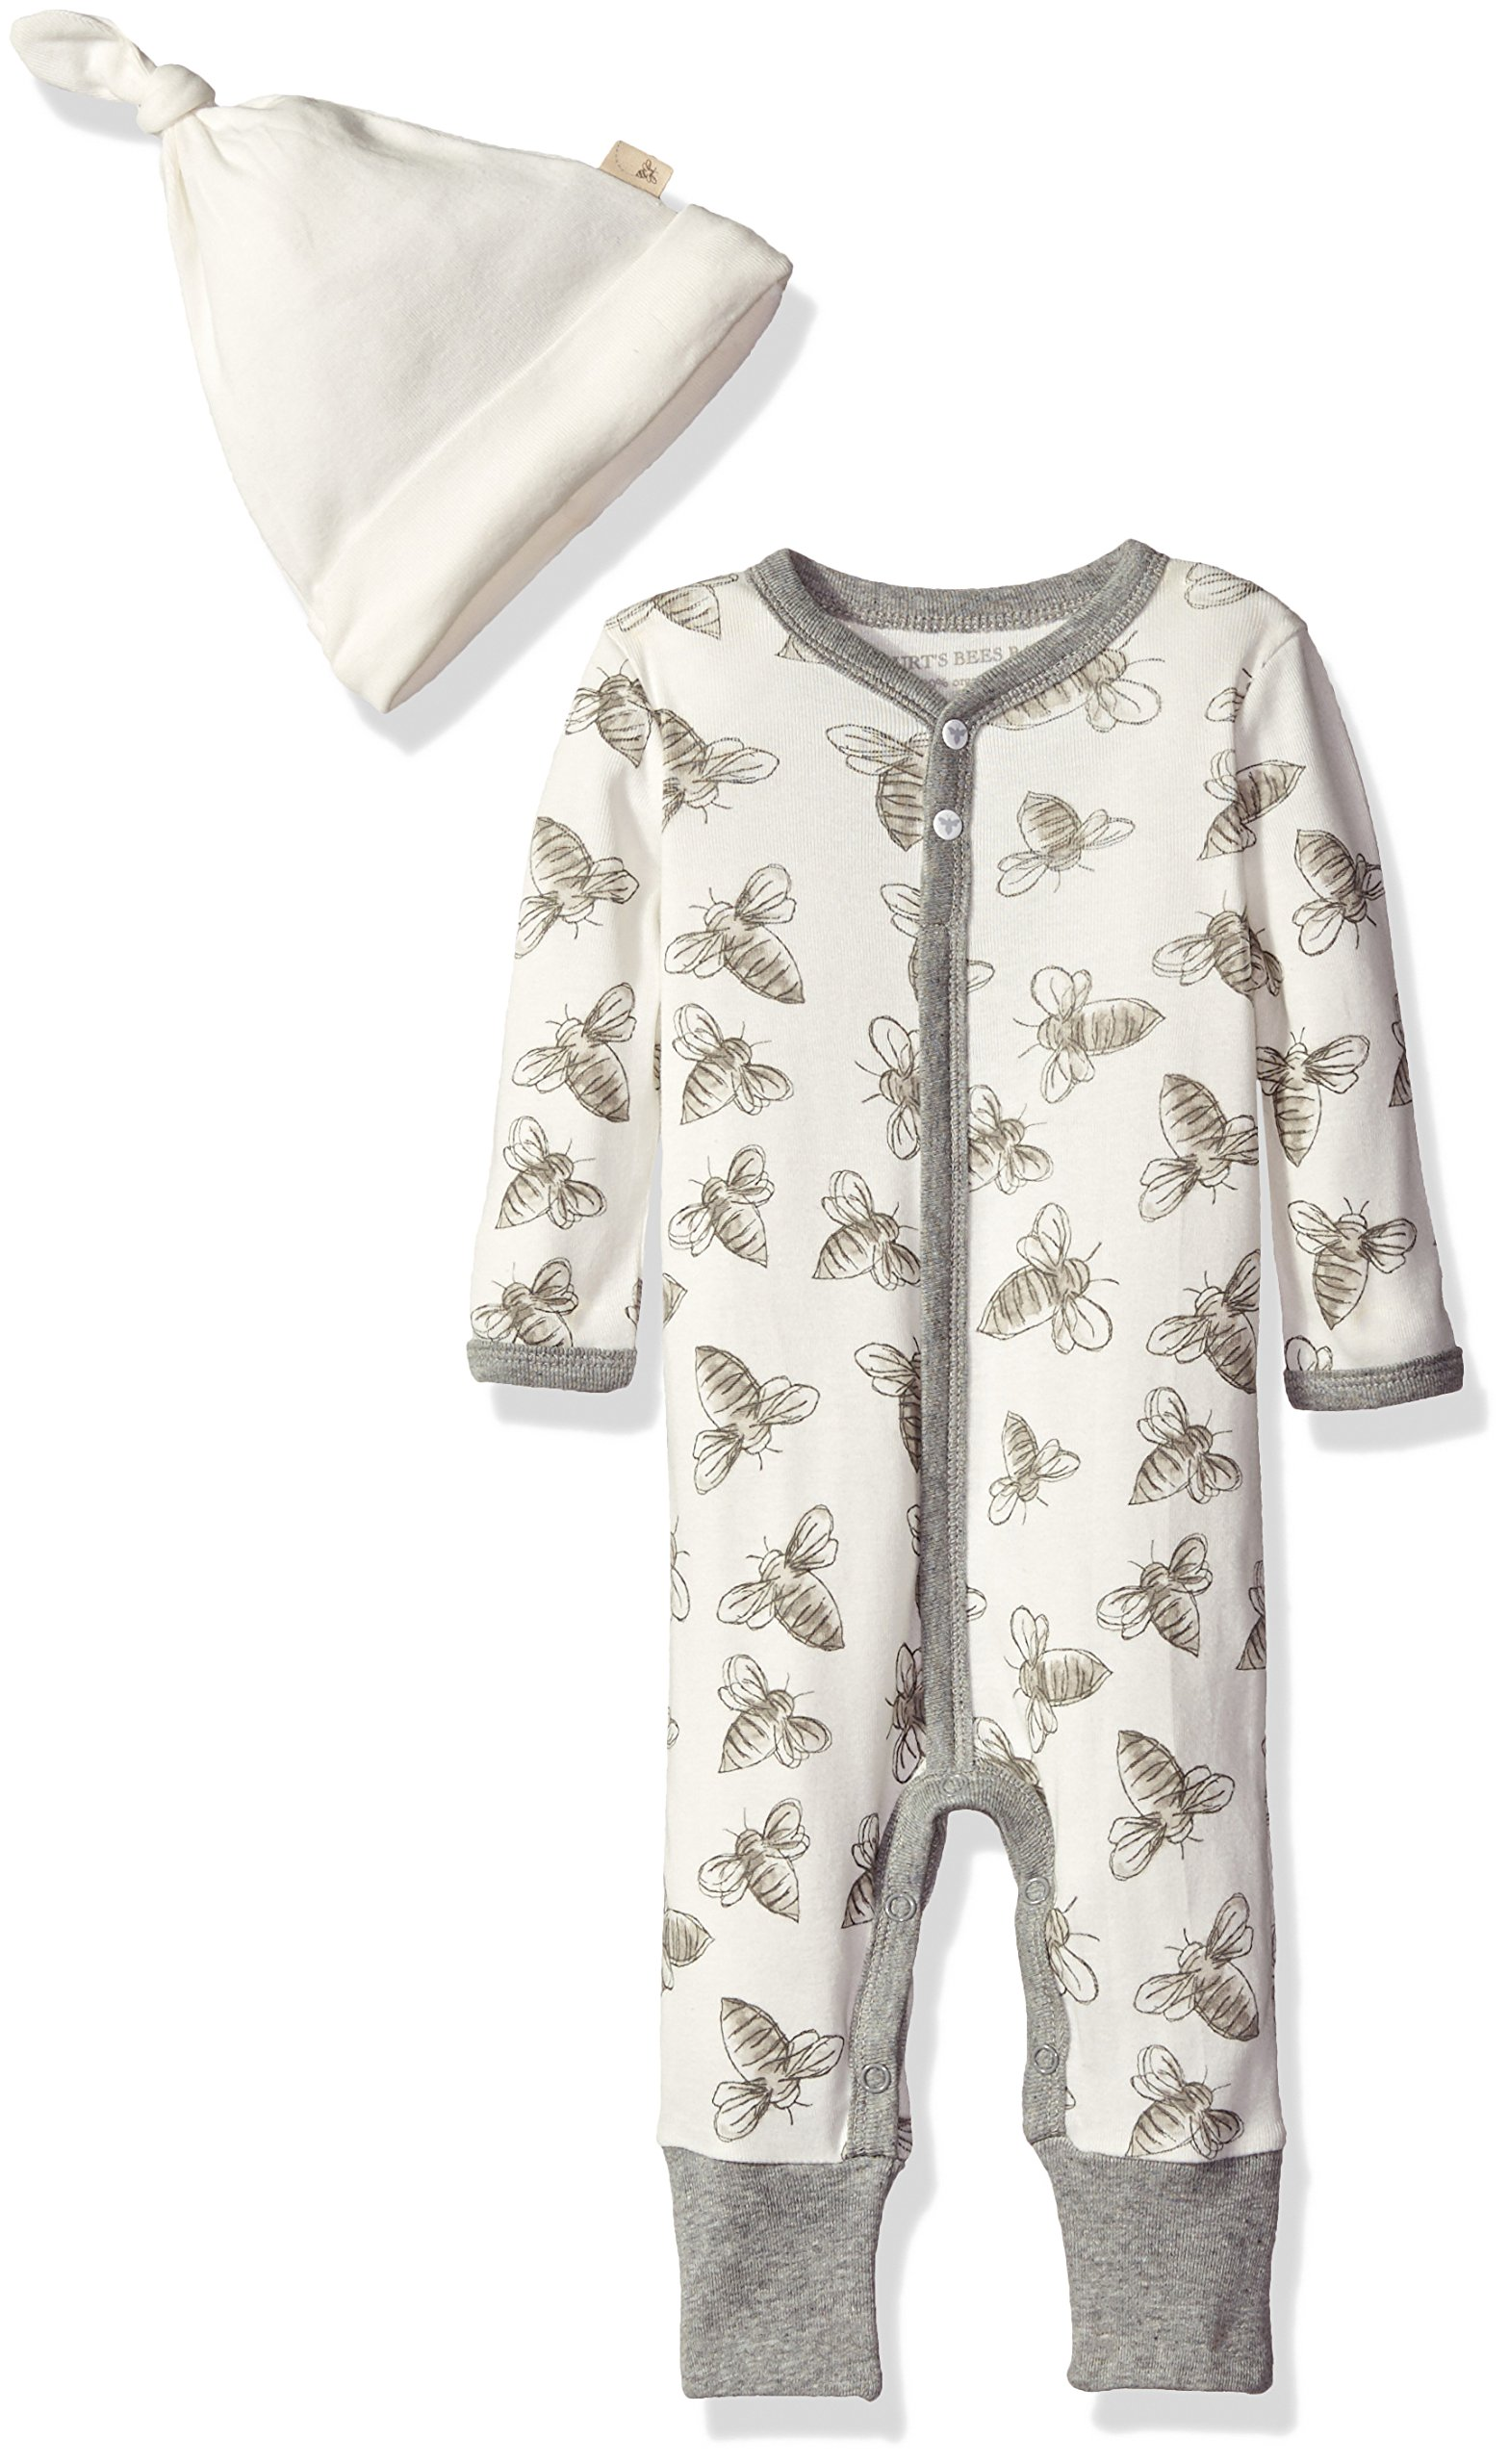 ea43b46748a Galleon - Burt's Bees Baby Baby Boys' Convertible Foot Organic Long Sleeve  Coverall, Heather Grey Bee, 0-3 Months